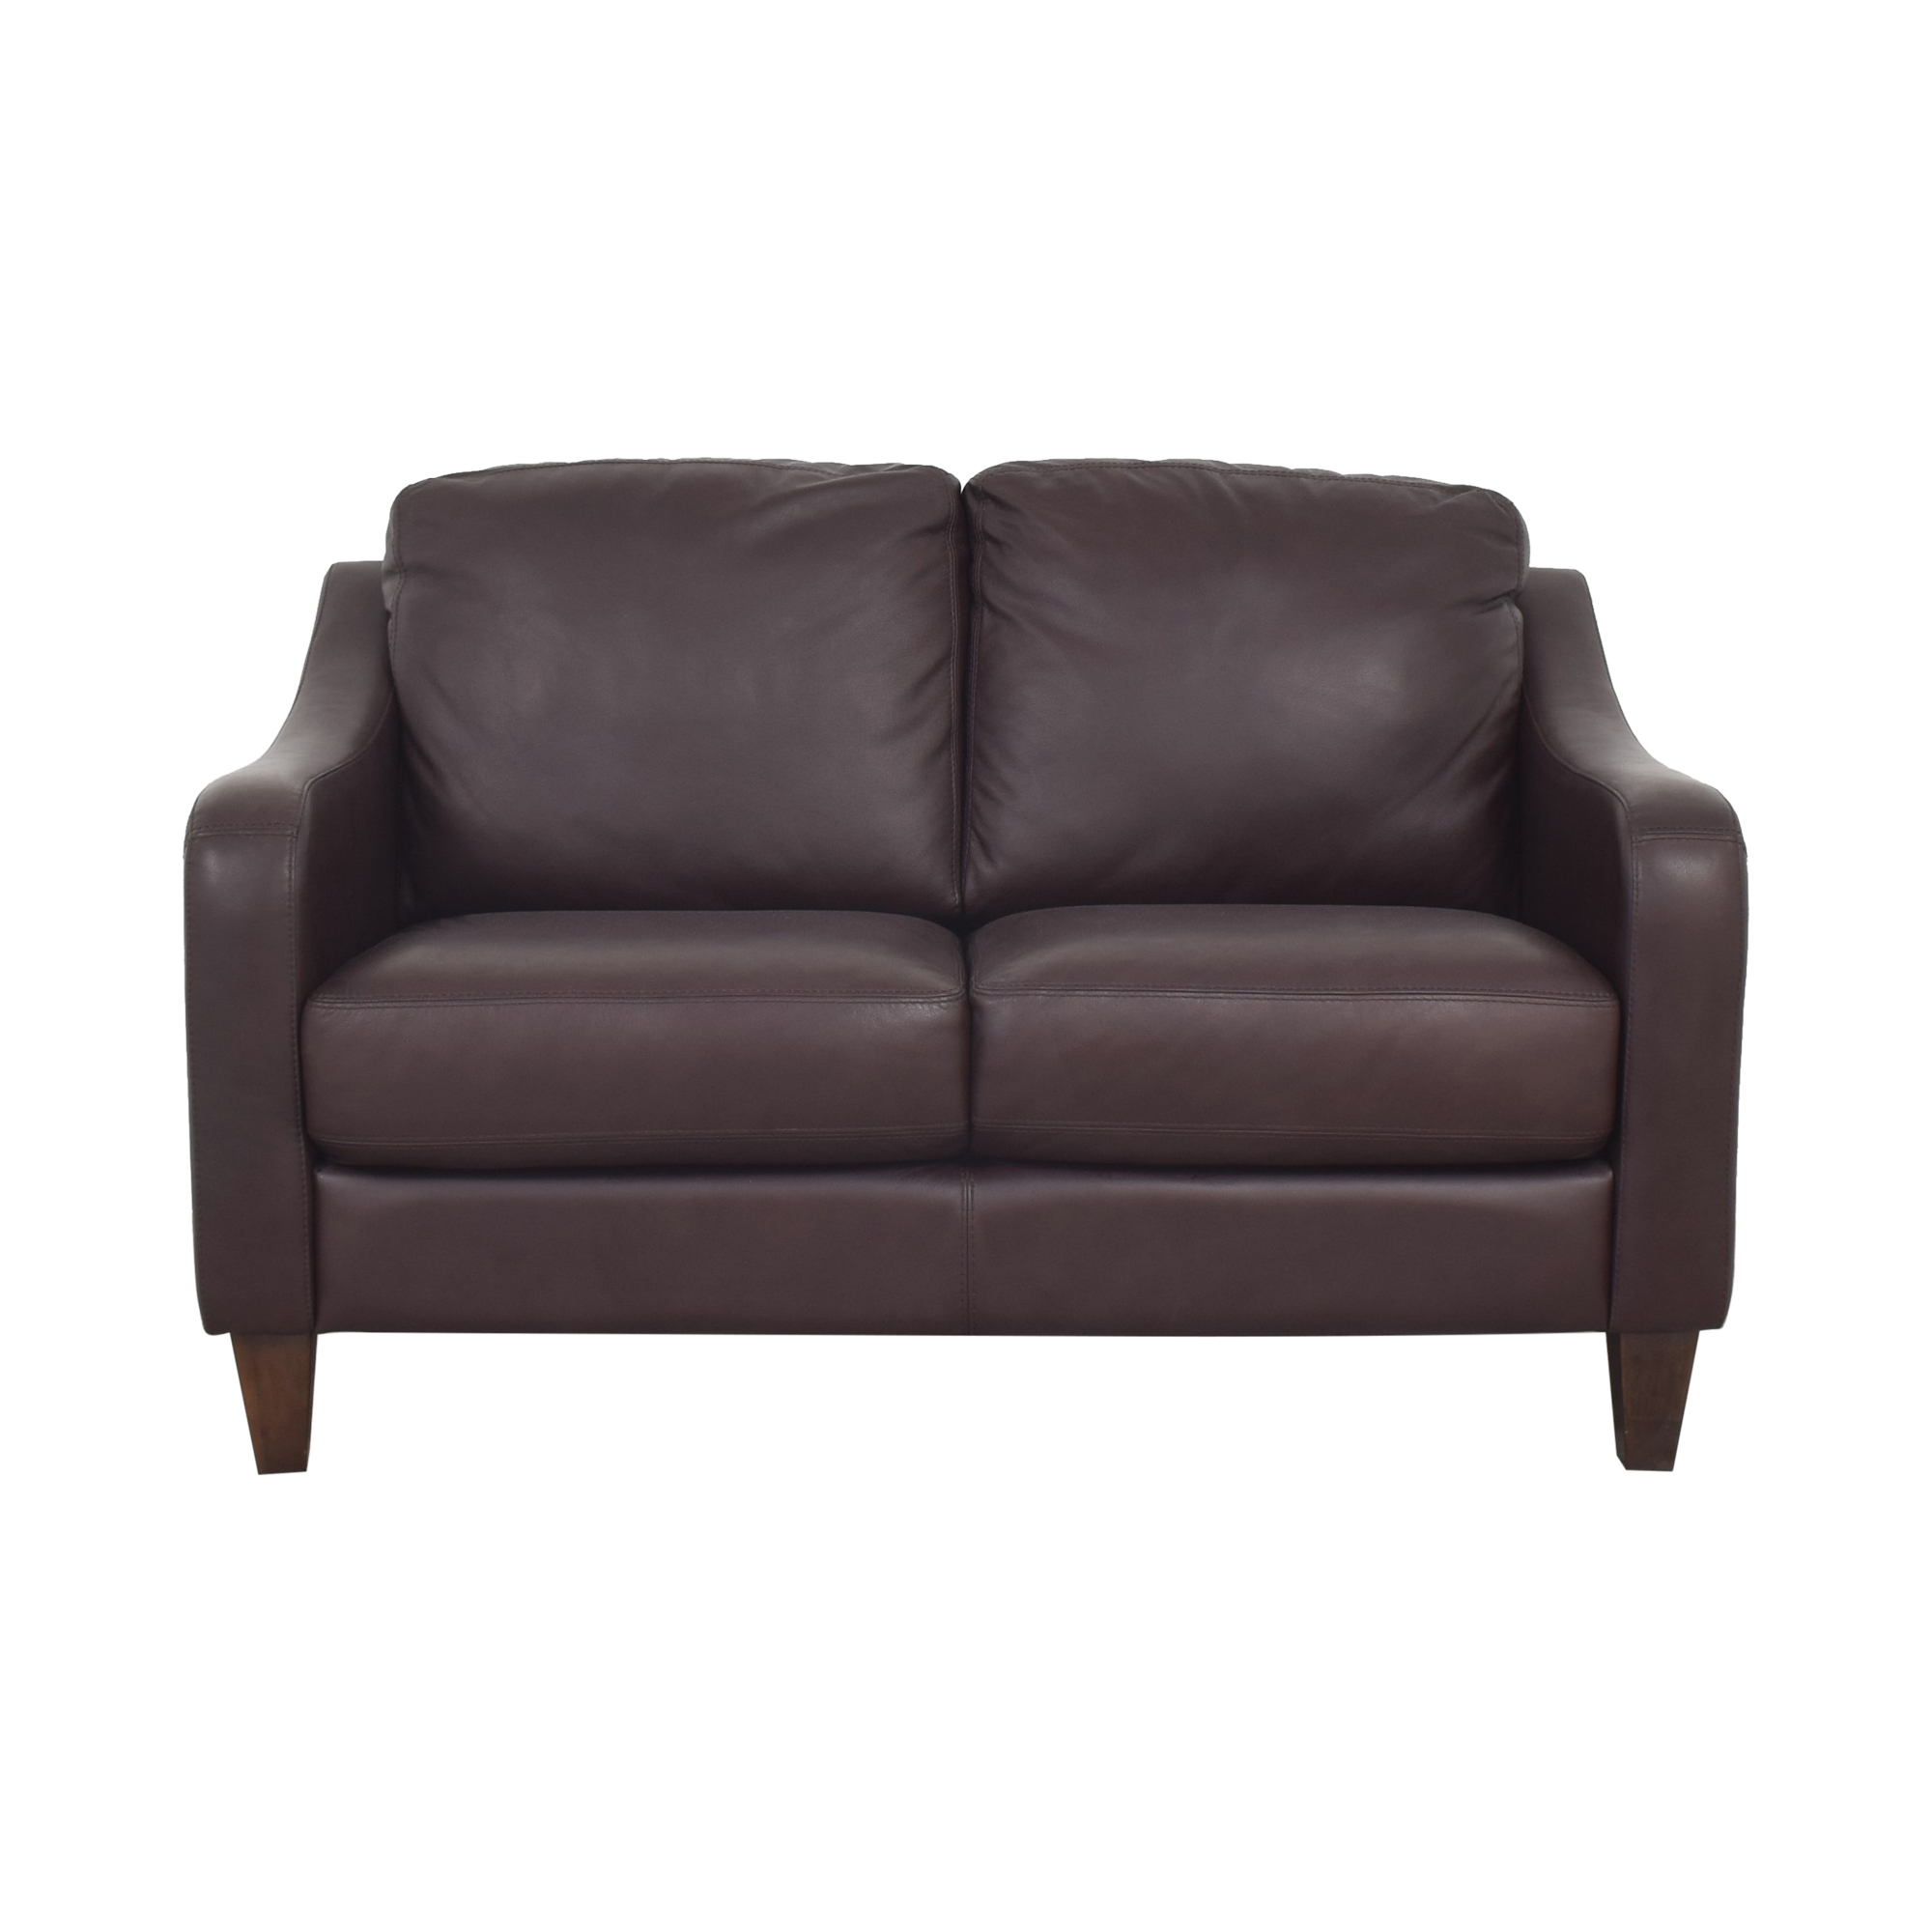 Chateau d'Ax Chateau d'Ax Slope Arm Loveseat second hand